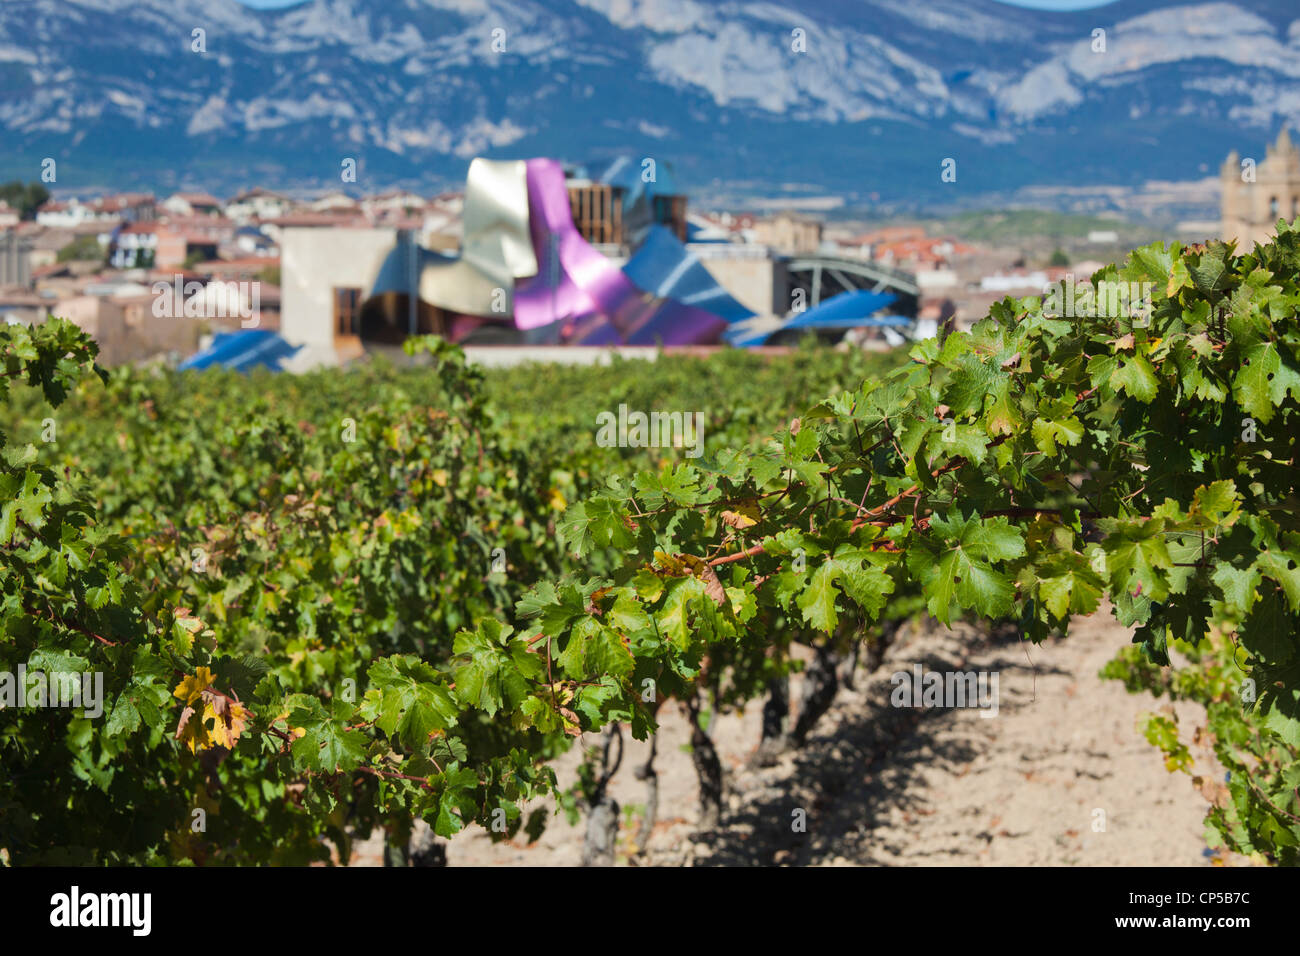 Spain, La Rioja Area, Alava Province, Elciego, elevated town view and Hotel Marques de Riscal, designed by Architect - Stock Image